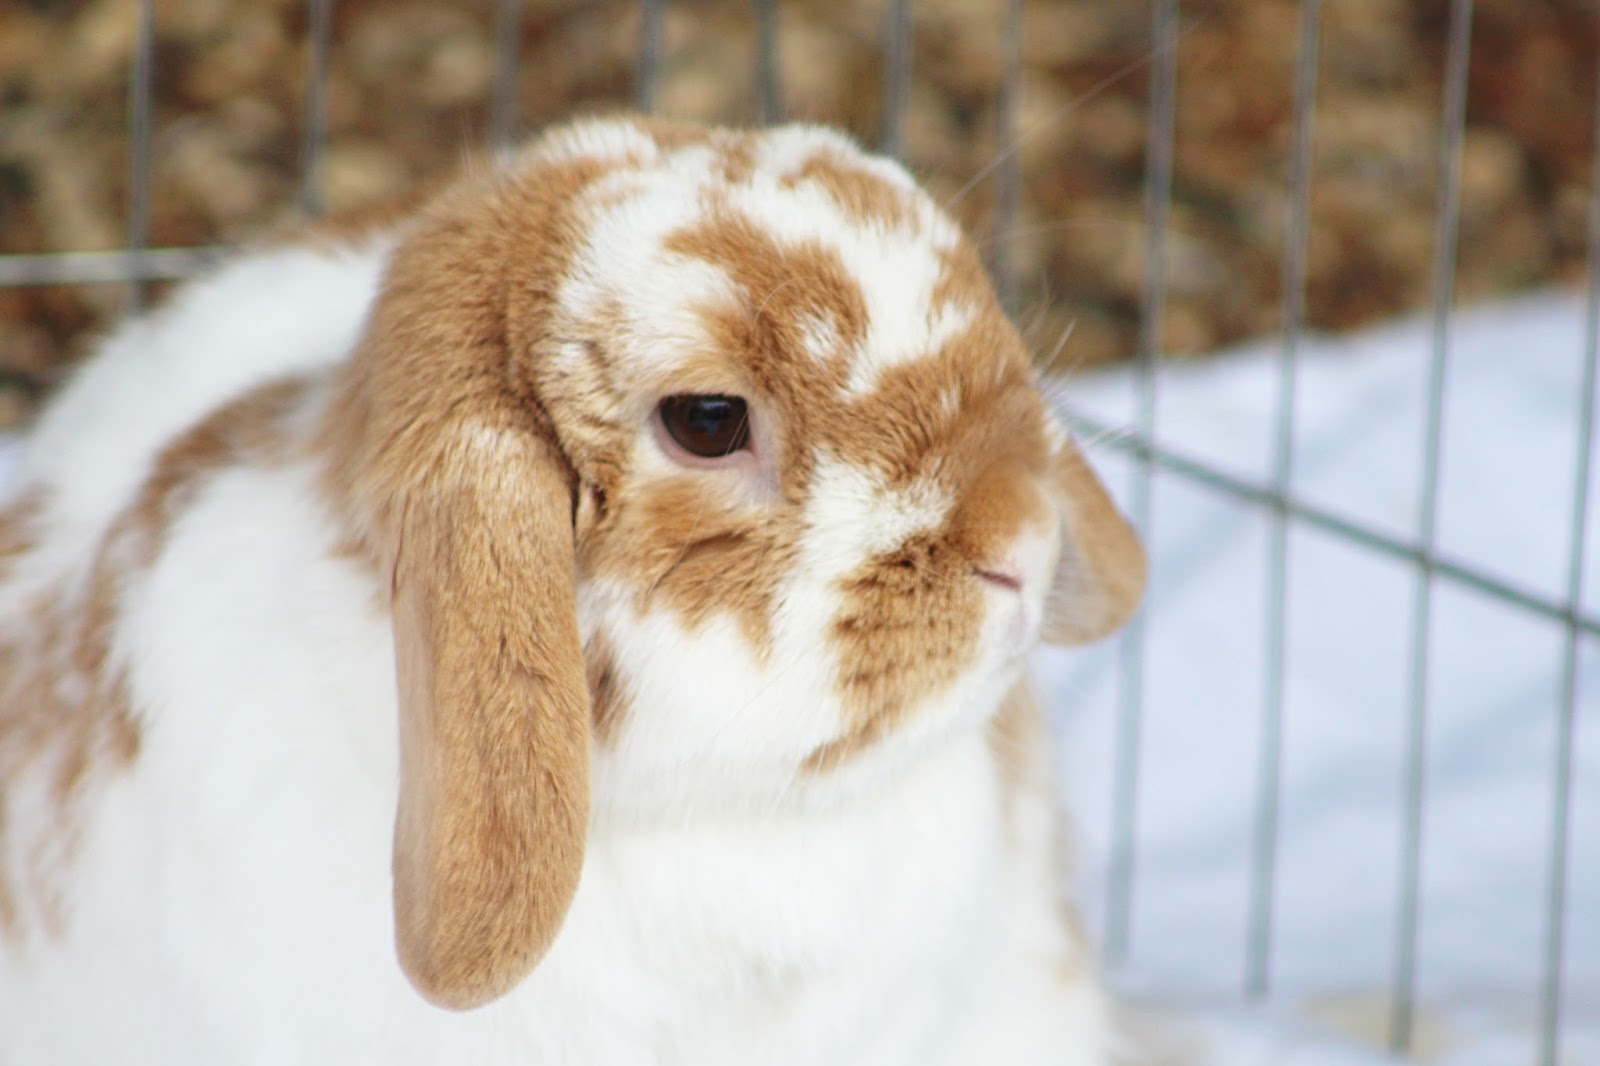 Please Don't Buy a Bunny as an Easter Present